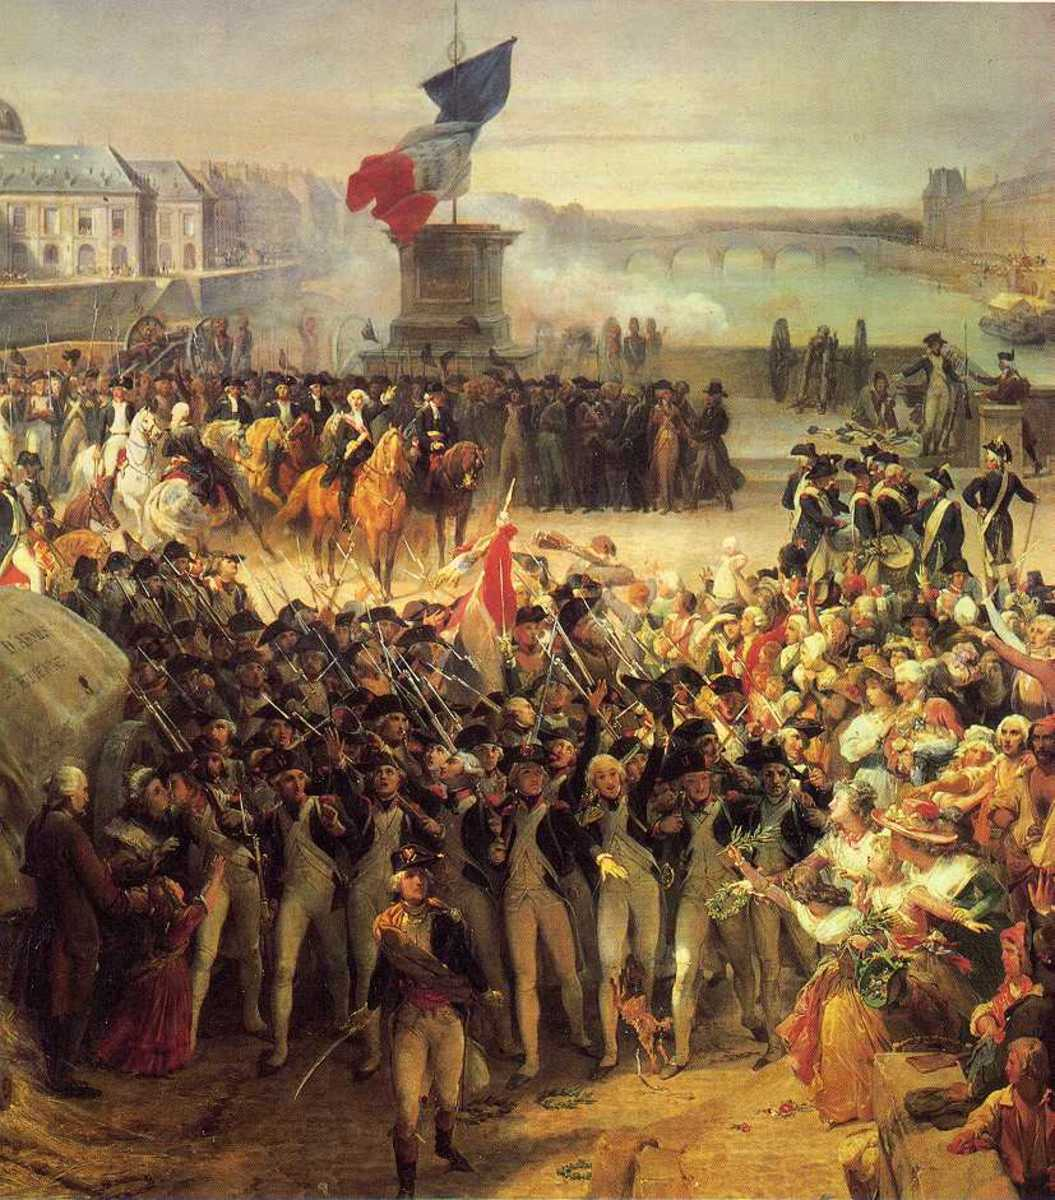 This painting from the French Revolution era shows the class between the court and the military that had swung to the side of the people and bourgeoisie.